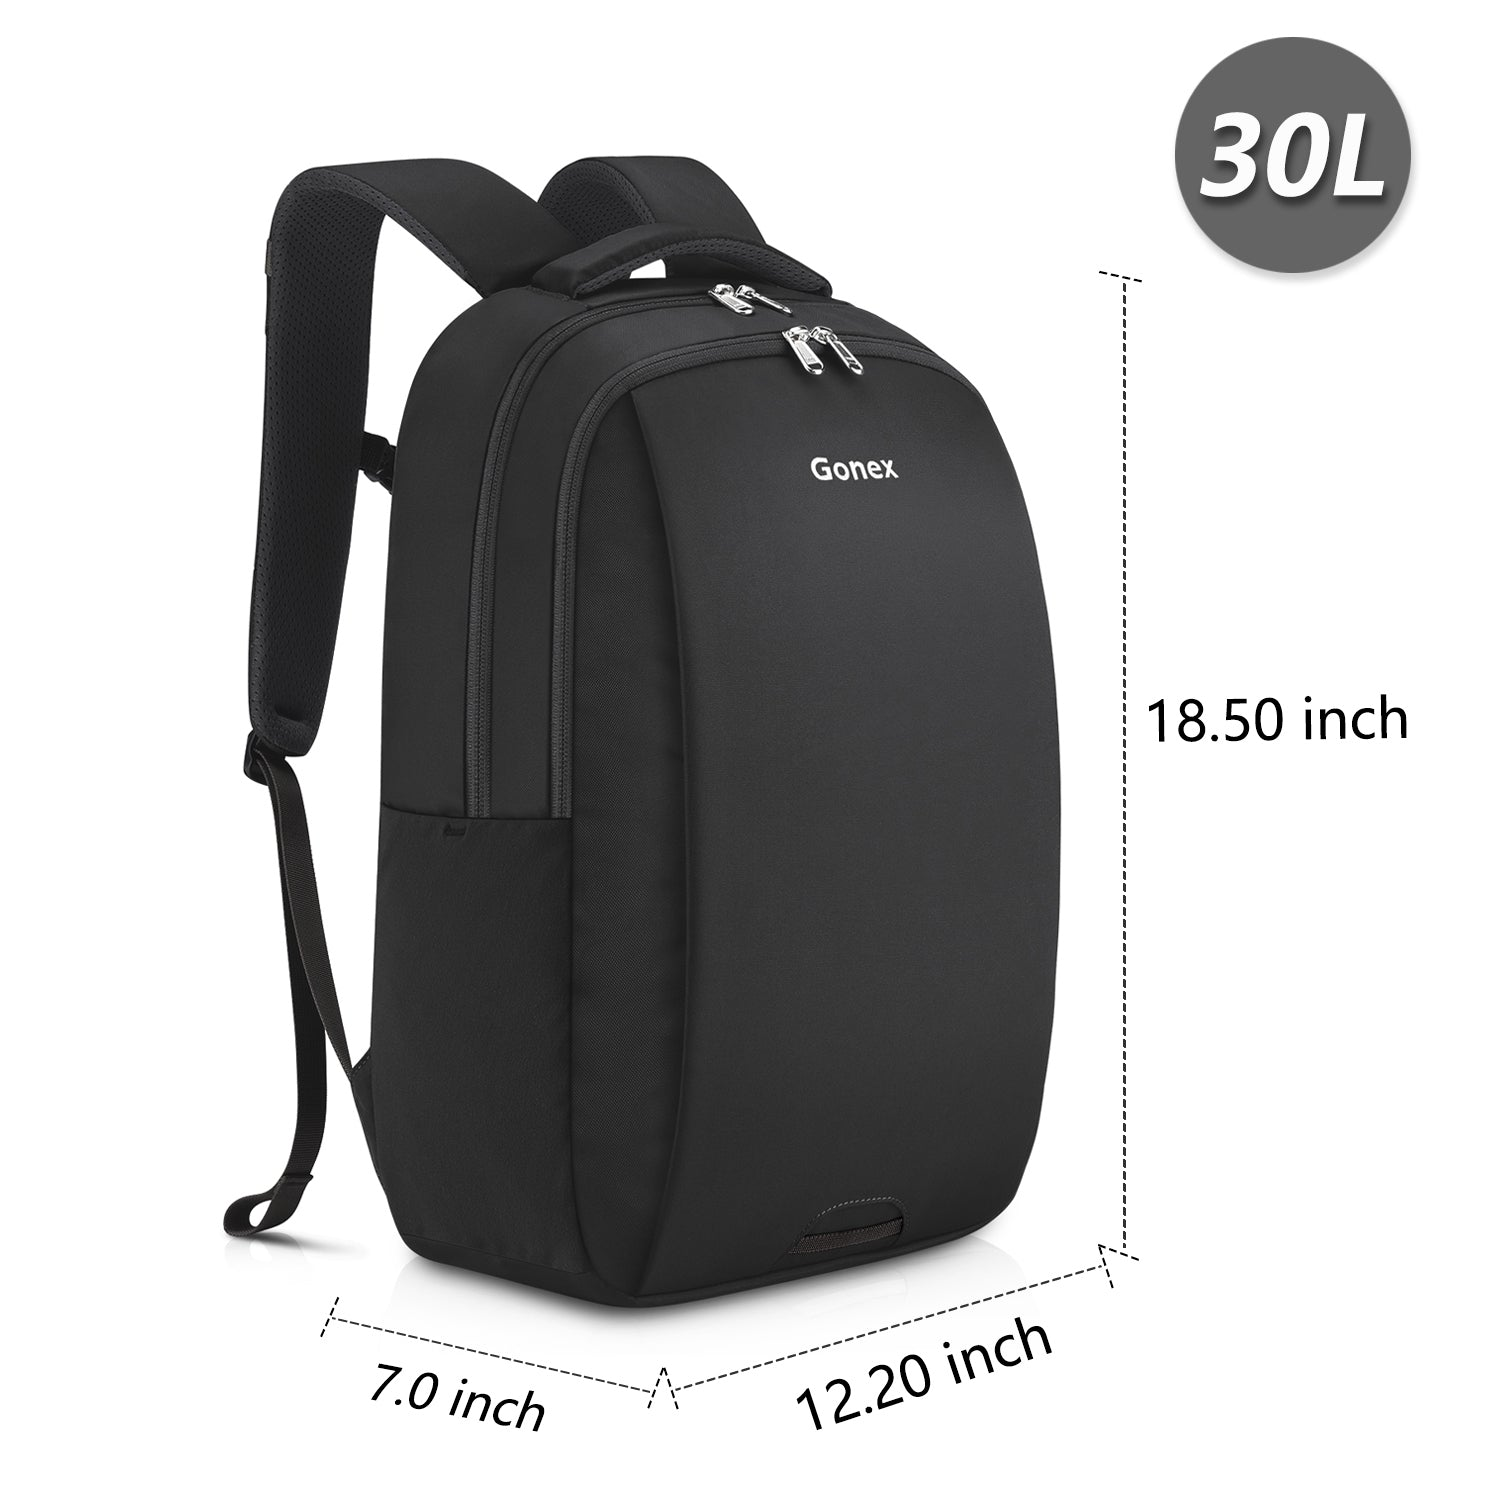 Travel Laptop Backpack, Gonex Business Anti Theft Slim Durable Laptops  Backpack Water Resistant College School Computer Bag for Women   Men Fits  14 inch ... 719a9fae16